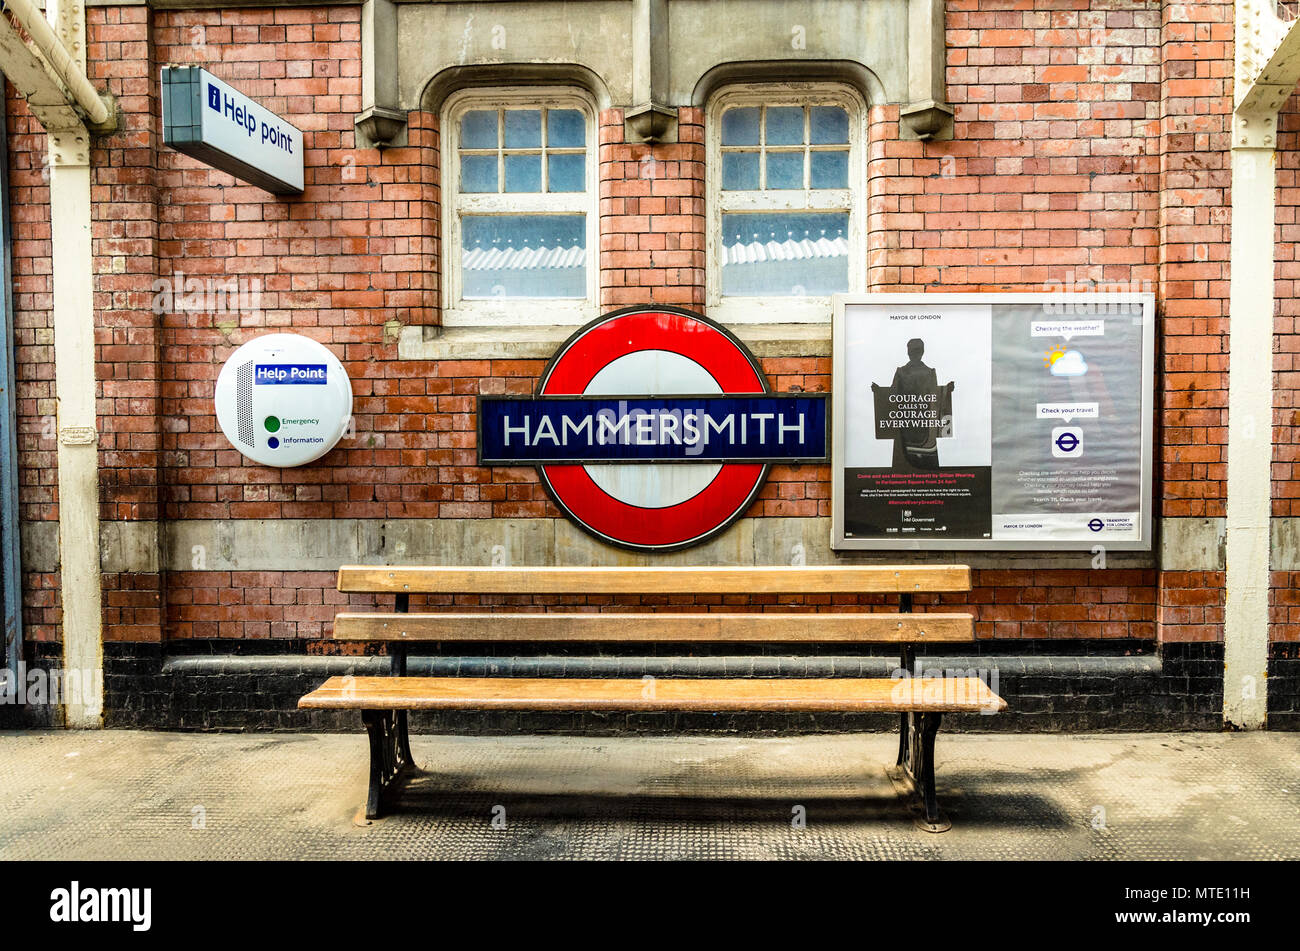 an-iconic-london-underground-station-name-sign-for-hammersmith-station-on-a-brick-wall-above-an-empty-wooden-bench-MTE11H.jpg